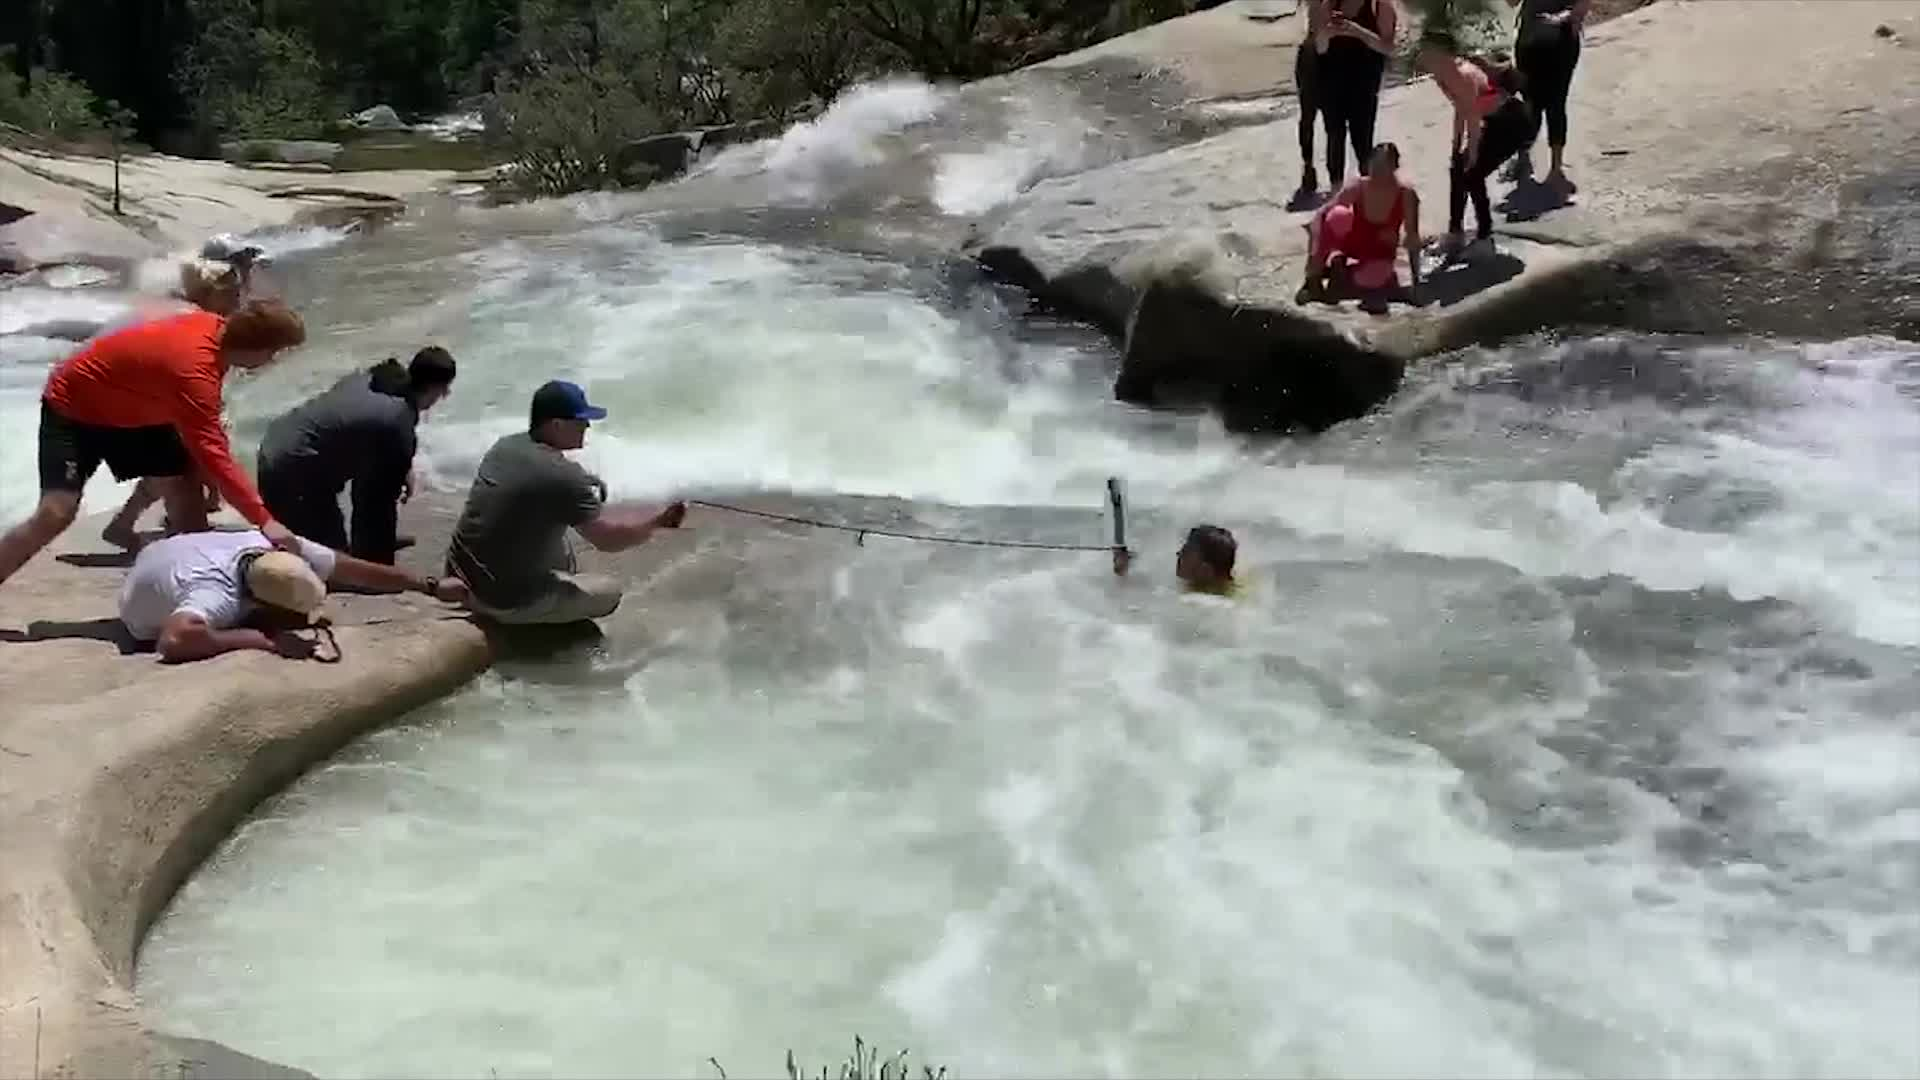 An off-duty officer saves a 24-year-old hiker who was trapped in a whirlpool near Bass Lake in Madera County on May 9, 2020. (CHP via CNN)